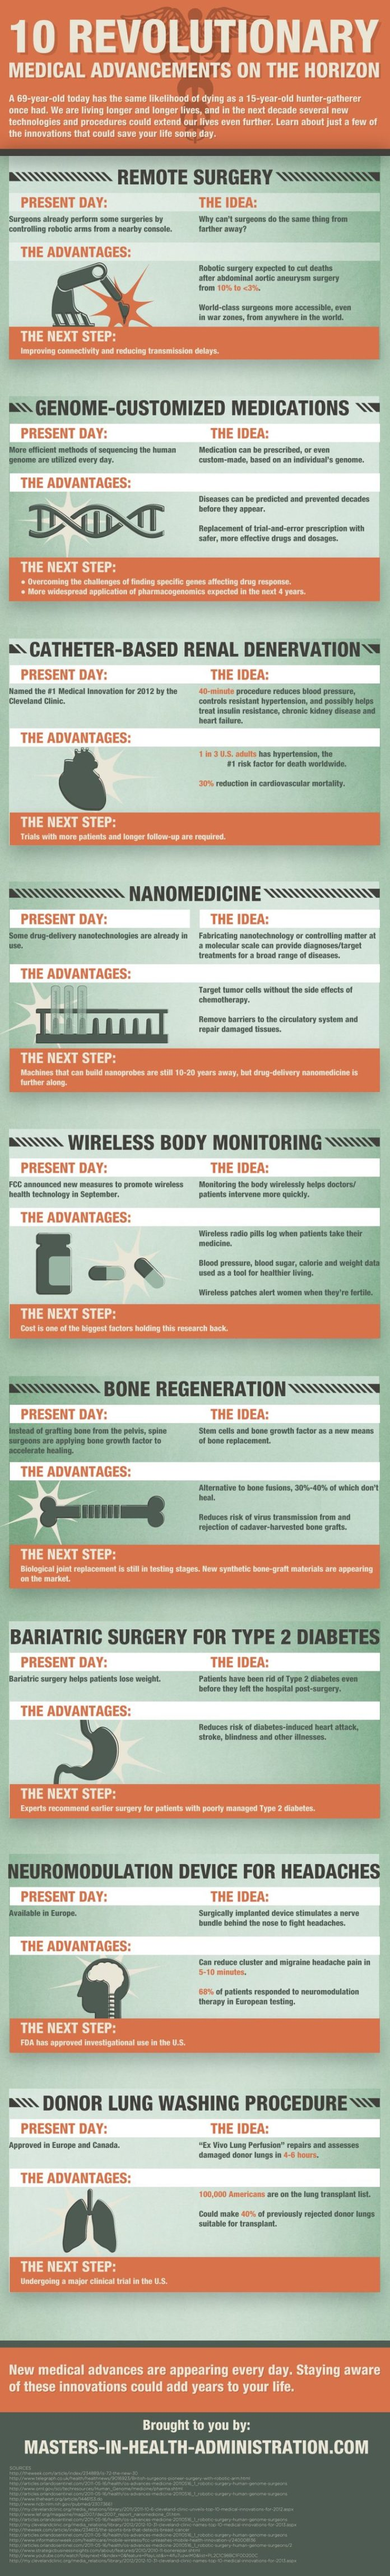 Healthcare Infographic 10 Revolutionary Medical Advancements On